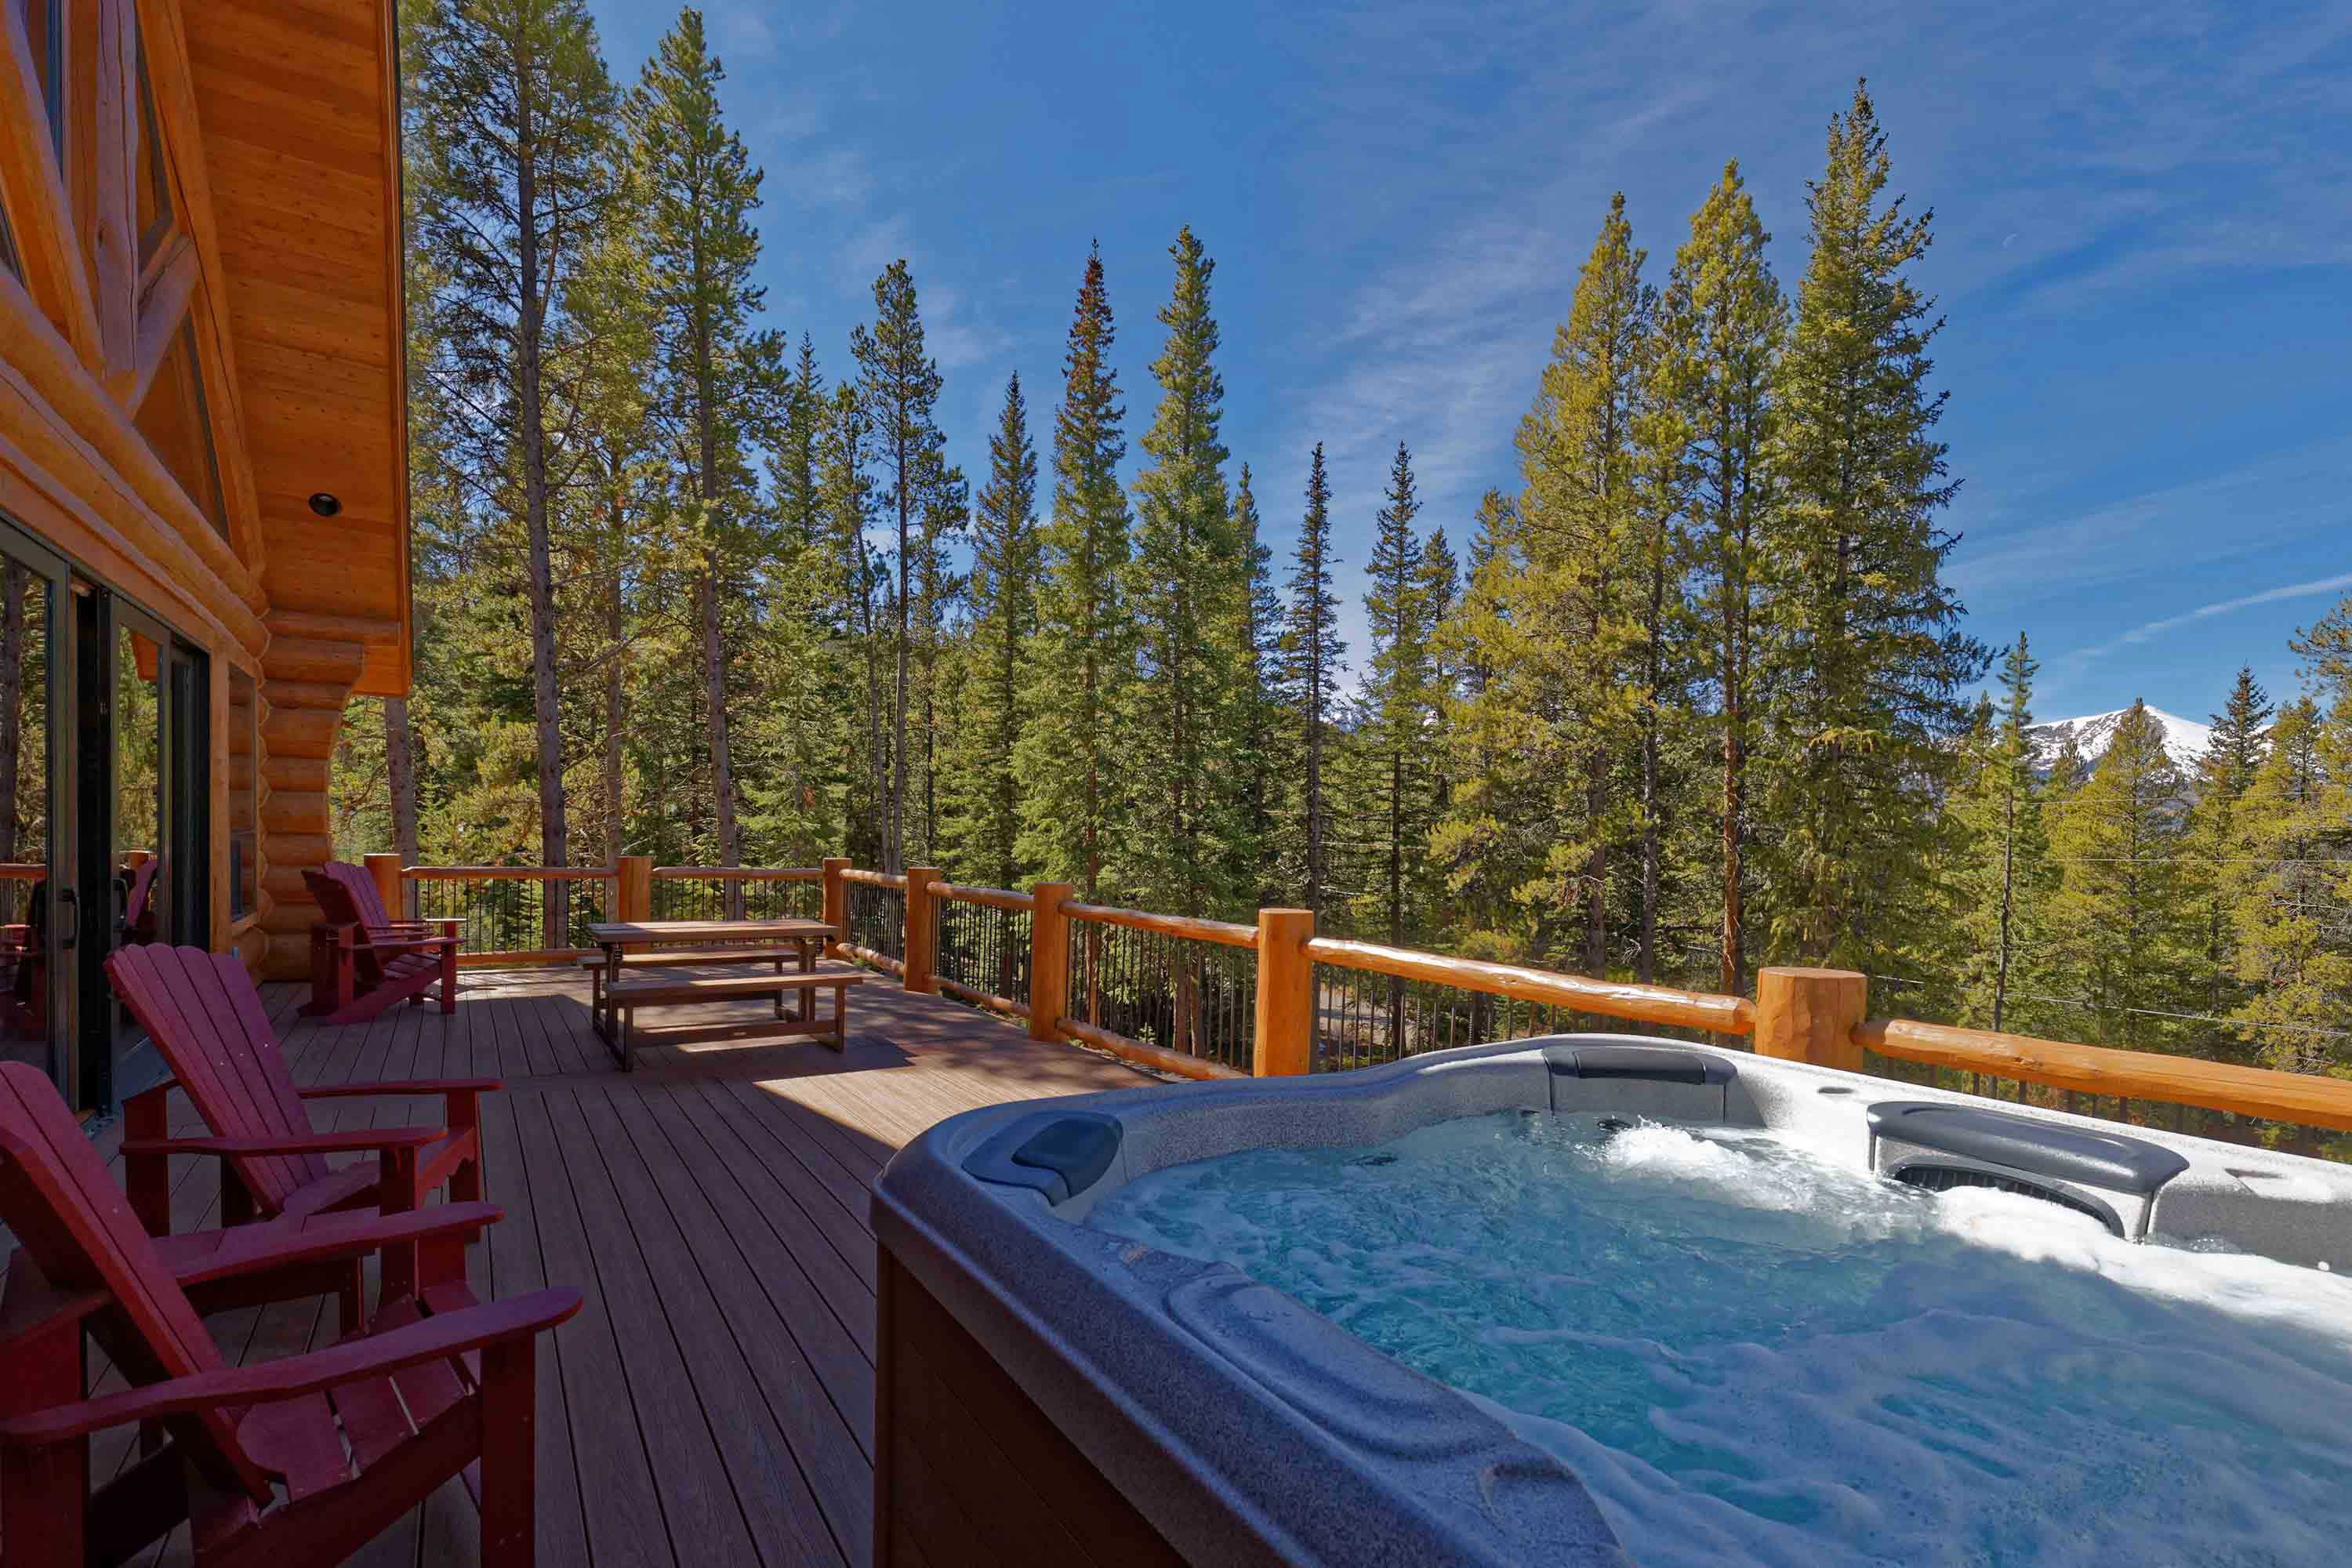 With a hot tub, mountain views, and more, this home for 8 can't be beaten.